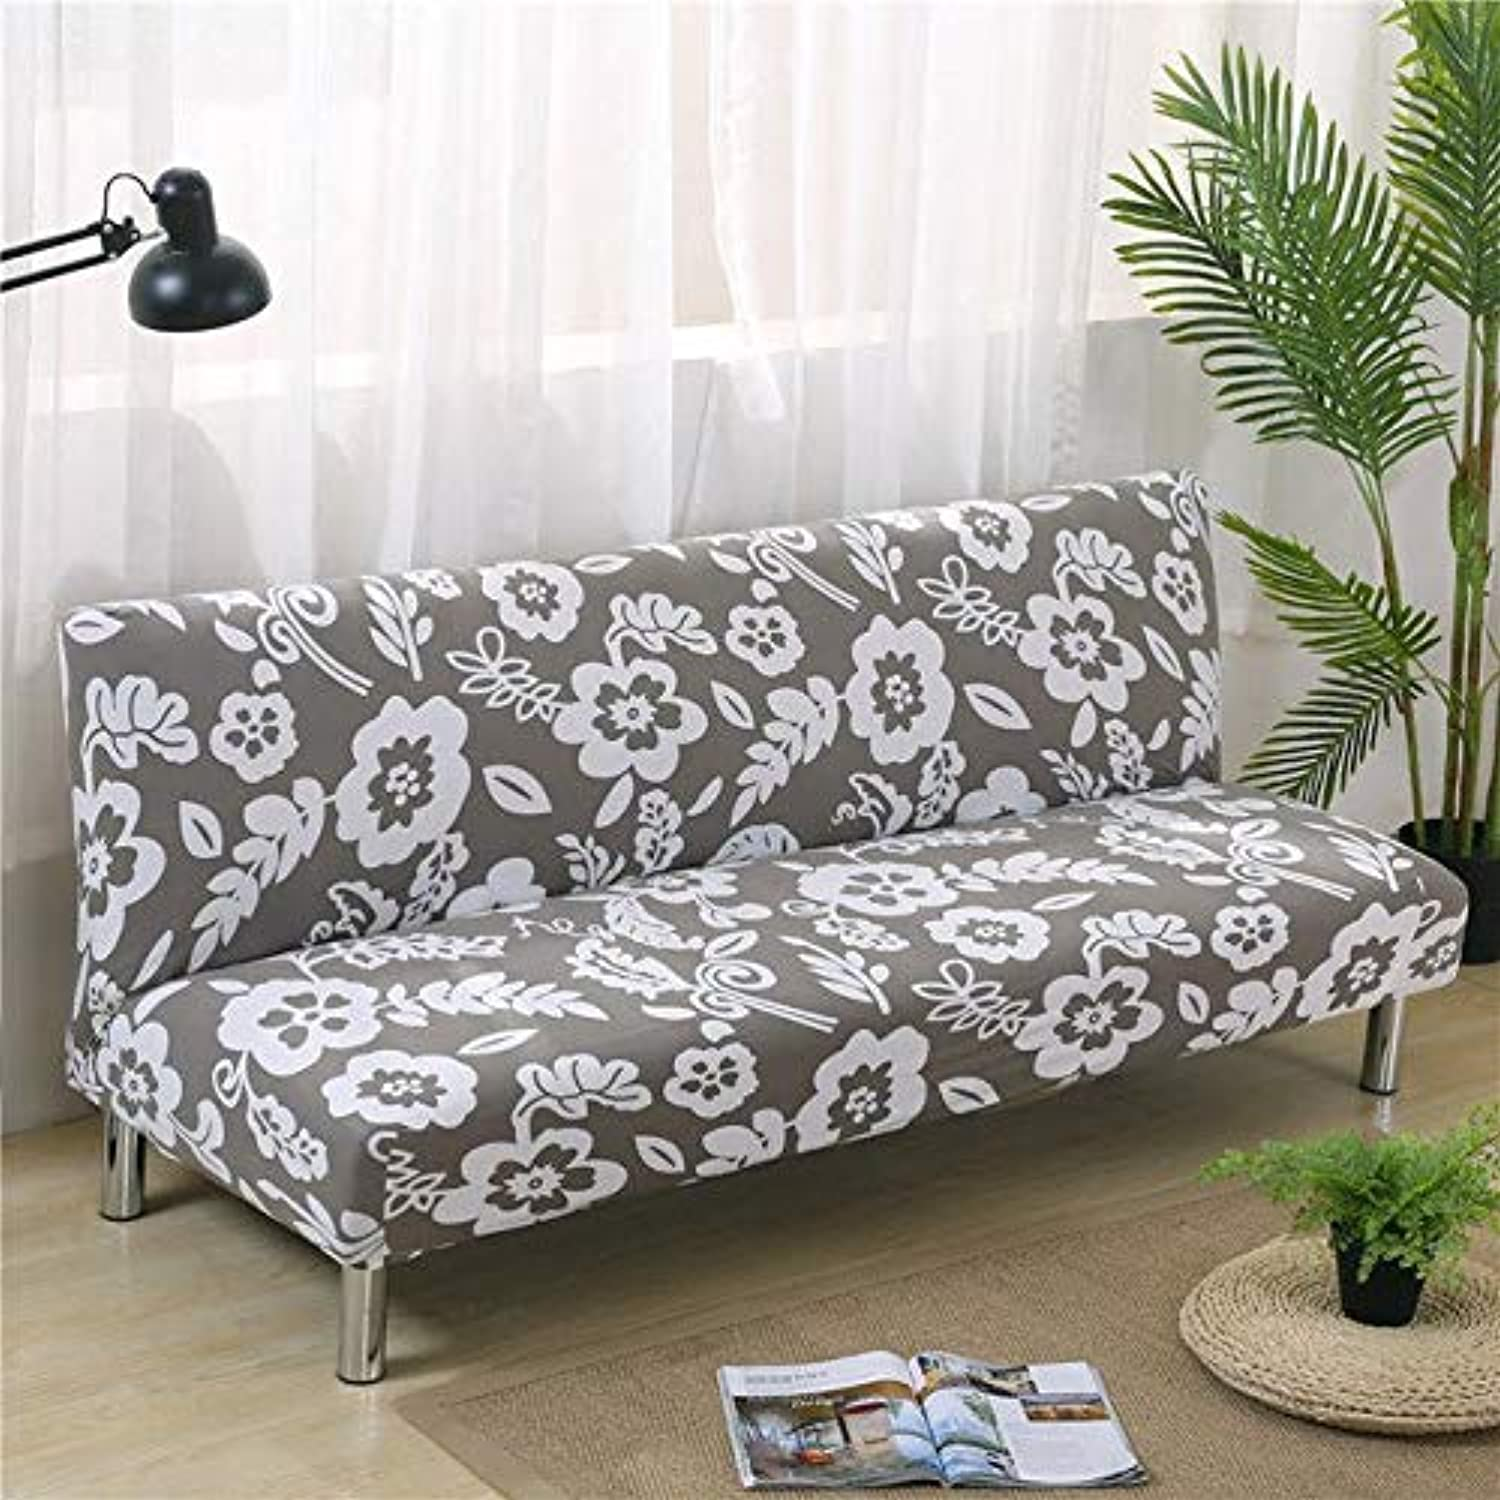 Elastic Sofa Bed Covers for Living Room Sofa Towel Slip-Resistant Sofa Bed Cover Cotton Strech Slipcover   colour11, 160cm to 200cm